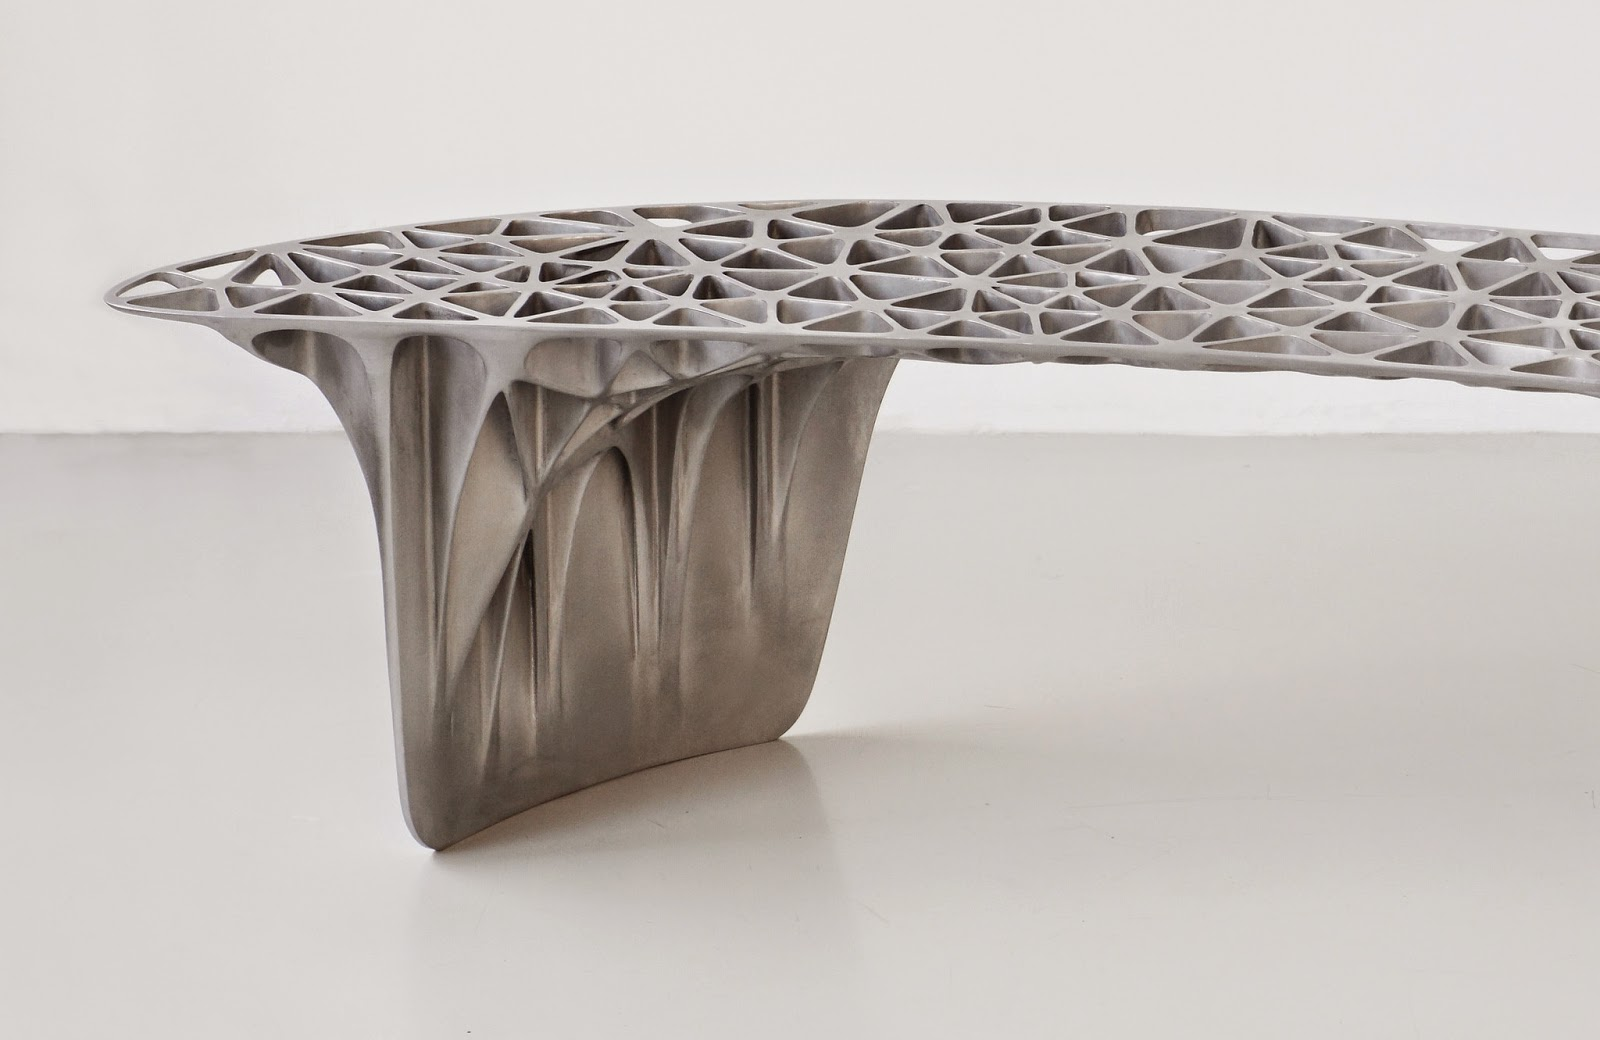 Moto mucci art design trusswork furniture of janne kyttanen for Furniture 3d printer